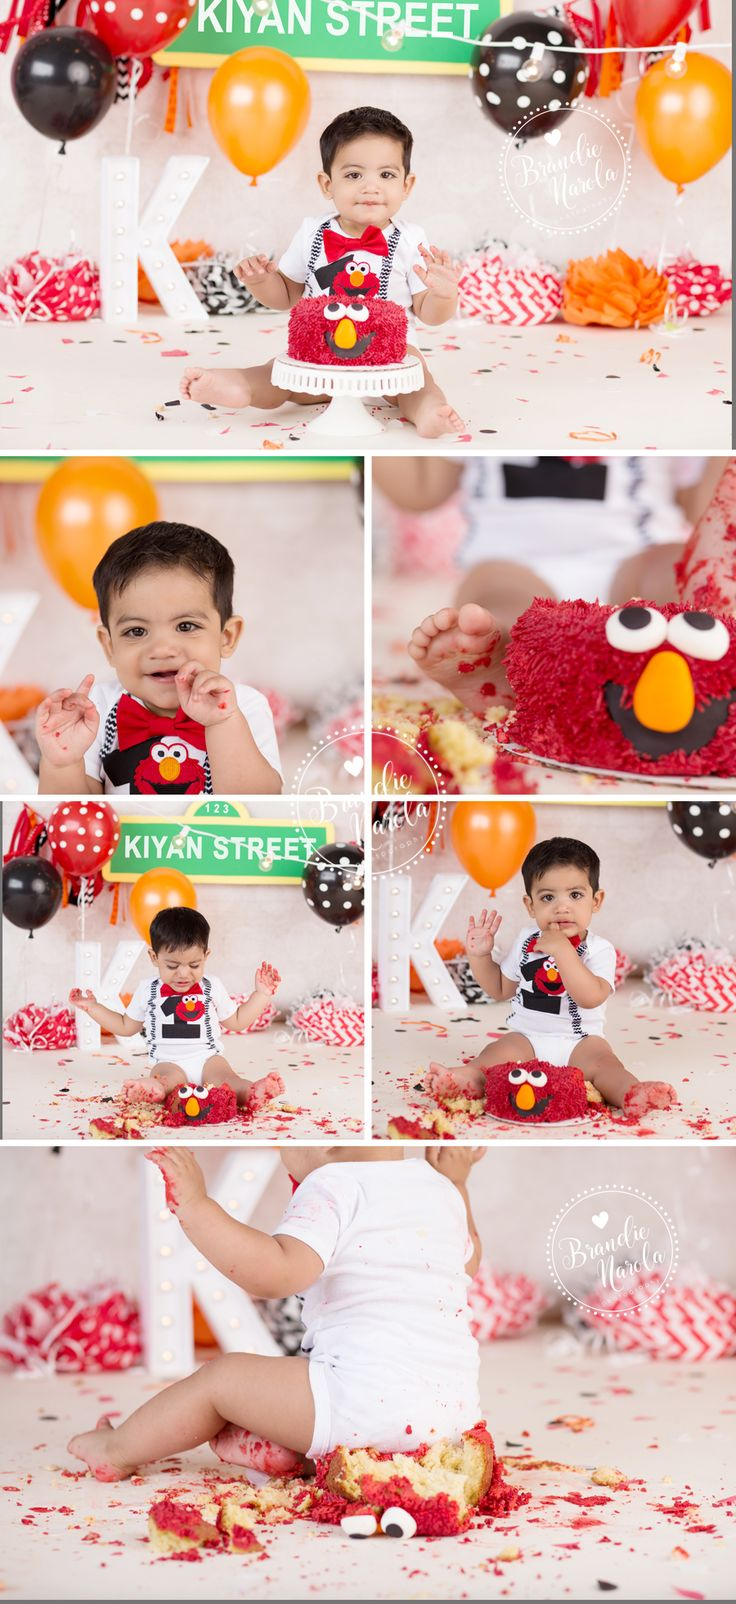 Elmo 1st birthday party ideas birthday party sesamestreet - Sesame Street Baby Cake Smash Photos By Brandie Narola Photography